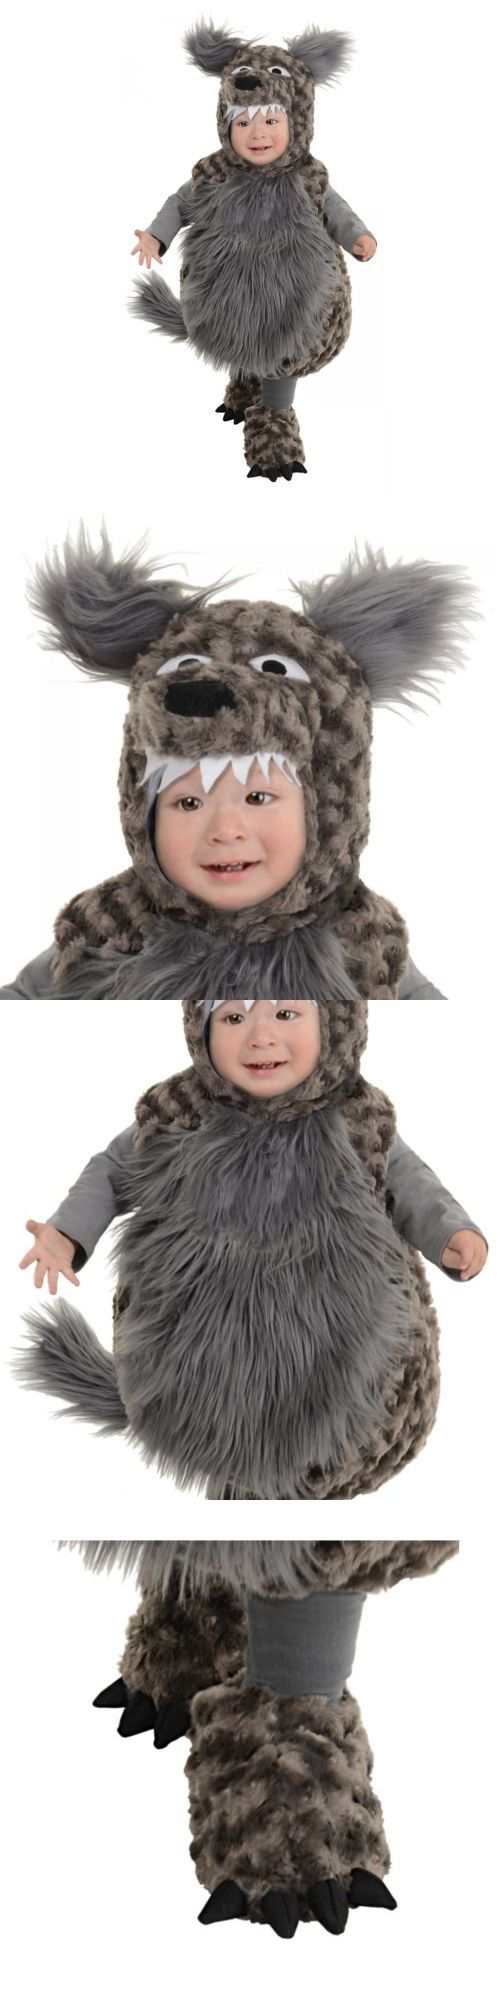 kids costumes toddler big bad wolf costume kids werewolf halloween fancy dress buy - Wolf Halloween Costume Kids